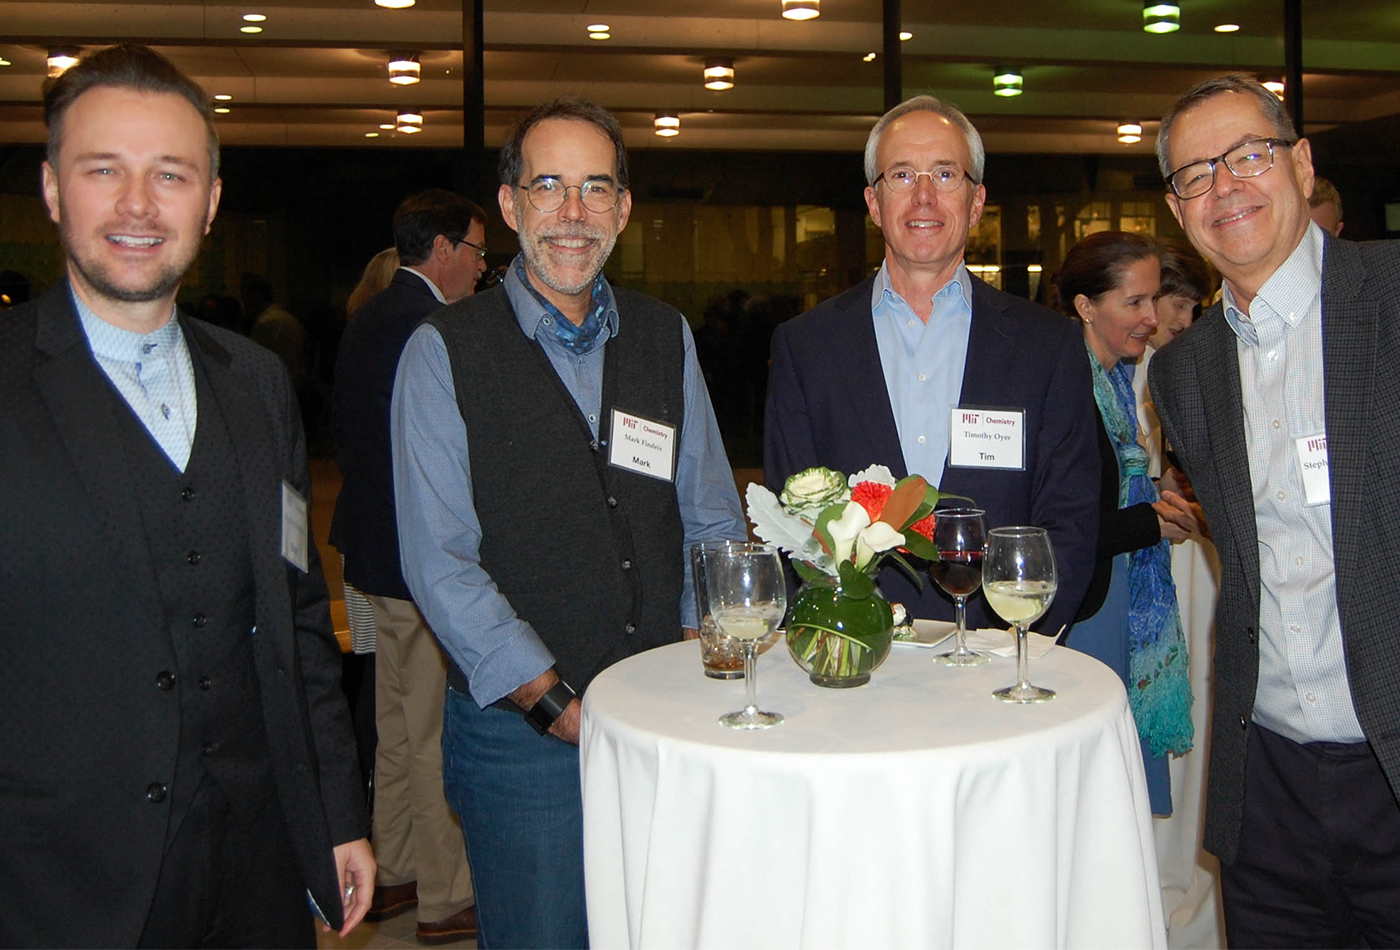 Dr. Mark Findeis, (SB 1981, V), Tim Oyer (PhD 1991, V), Prof. Steve Buchwald enjoying food and drinks..